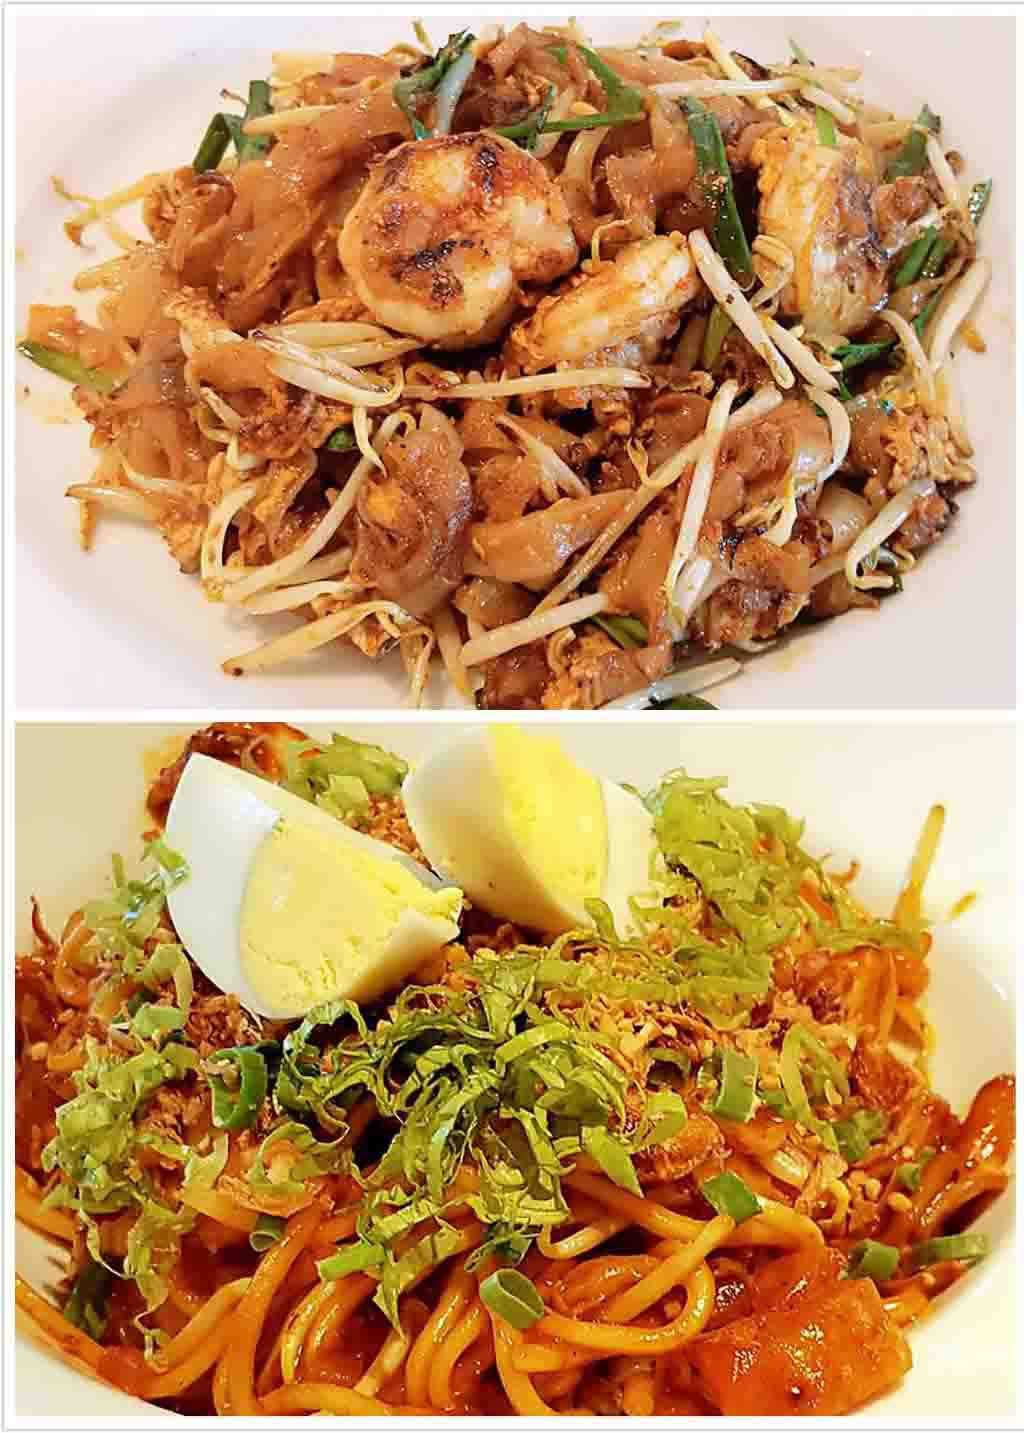 Urban Spices Cafe Penang Char Koay Teow Mee Mamak Sotong Halal Recipes Spice Cafe Food